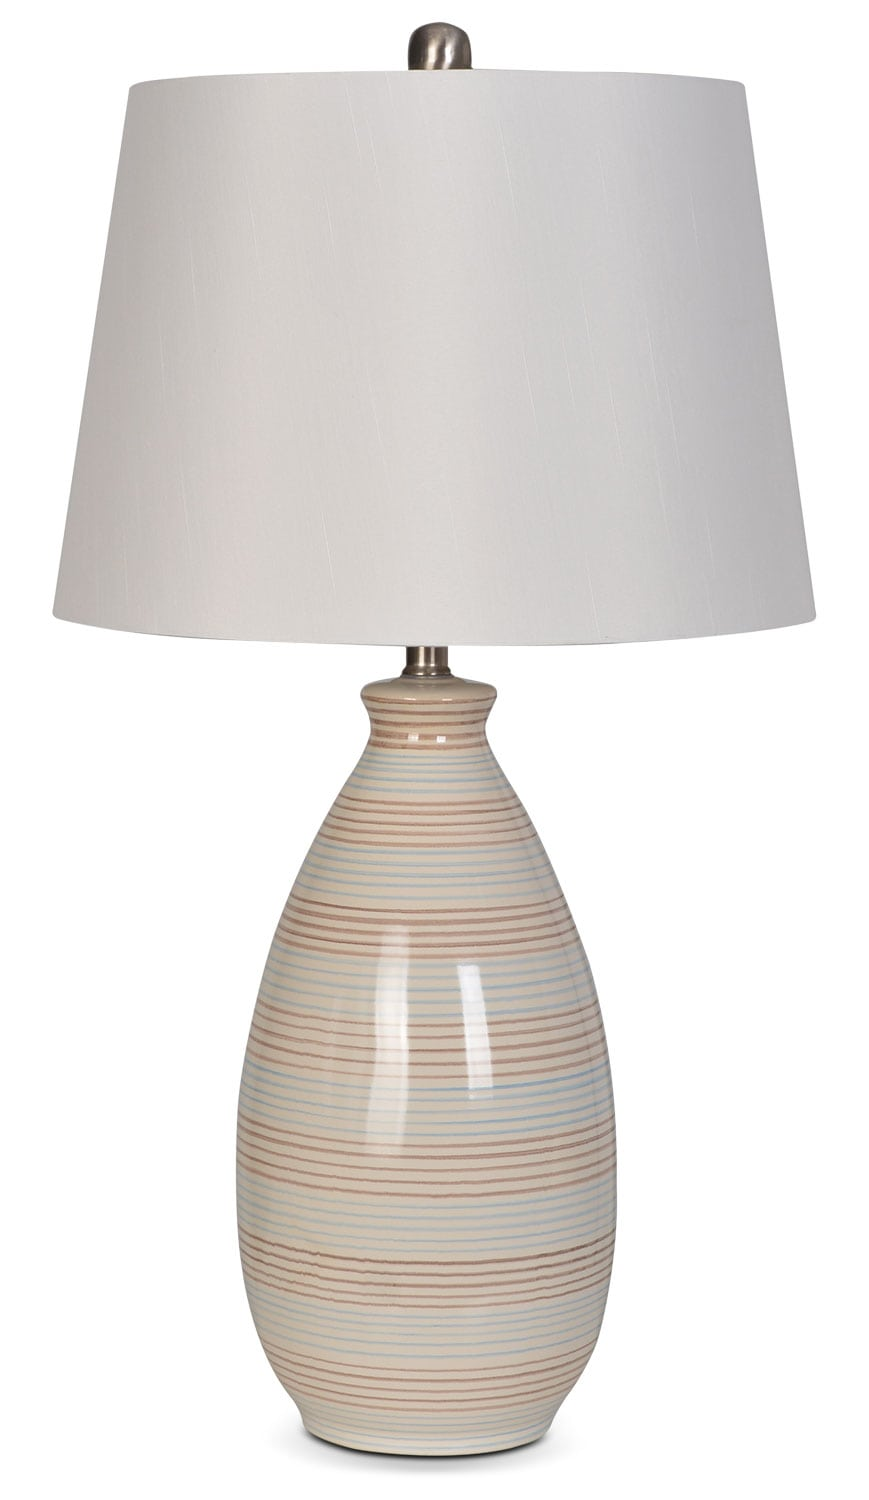 "Carly 26"" Table Lamp - Beige"